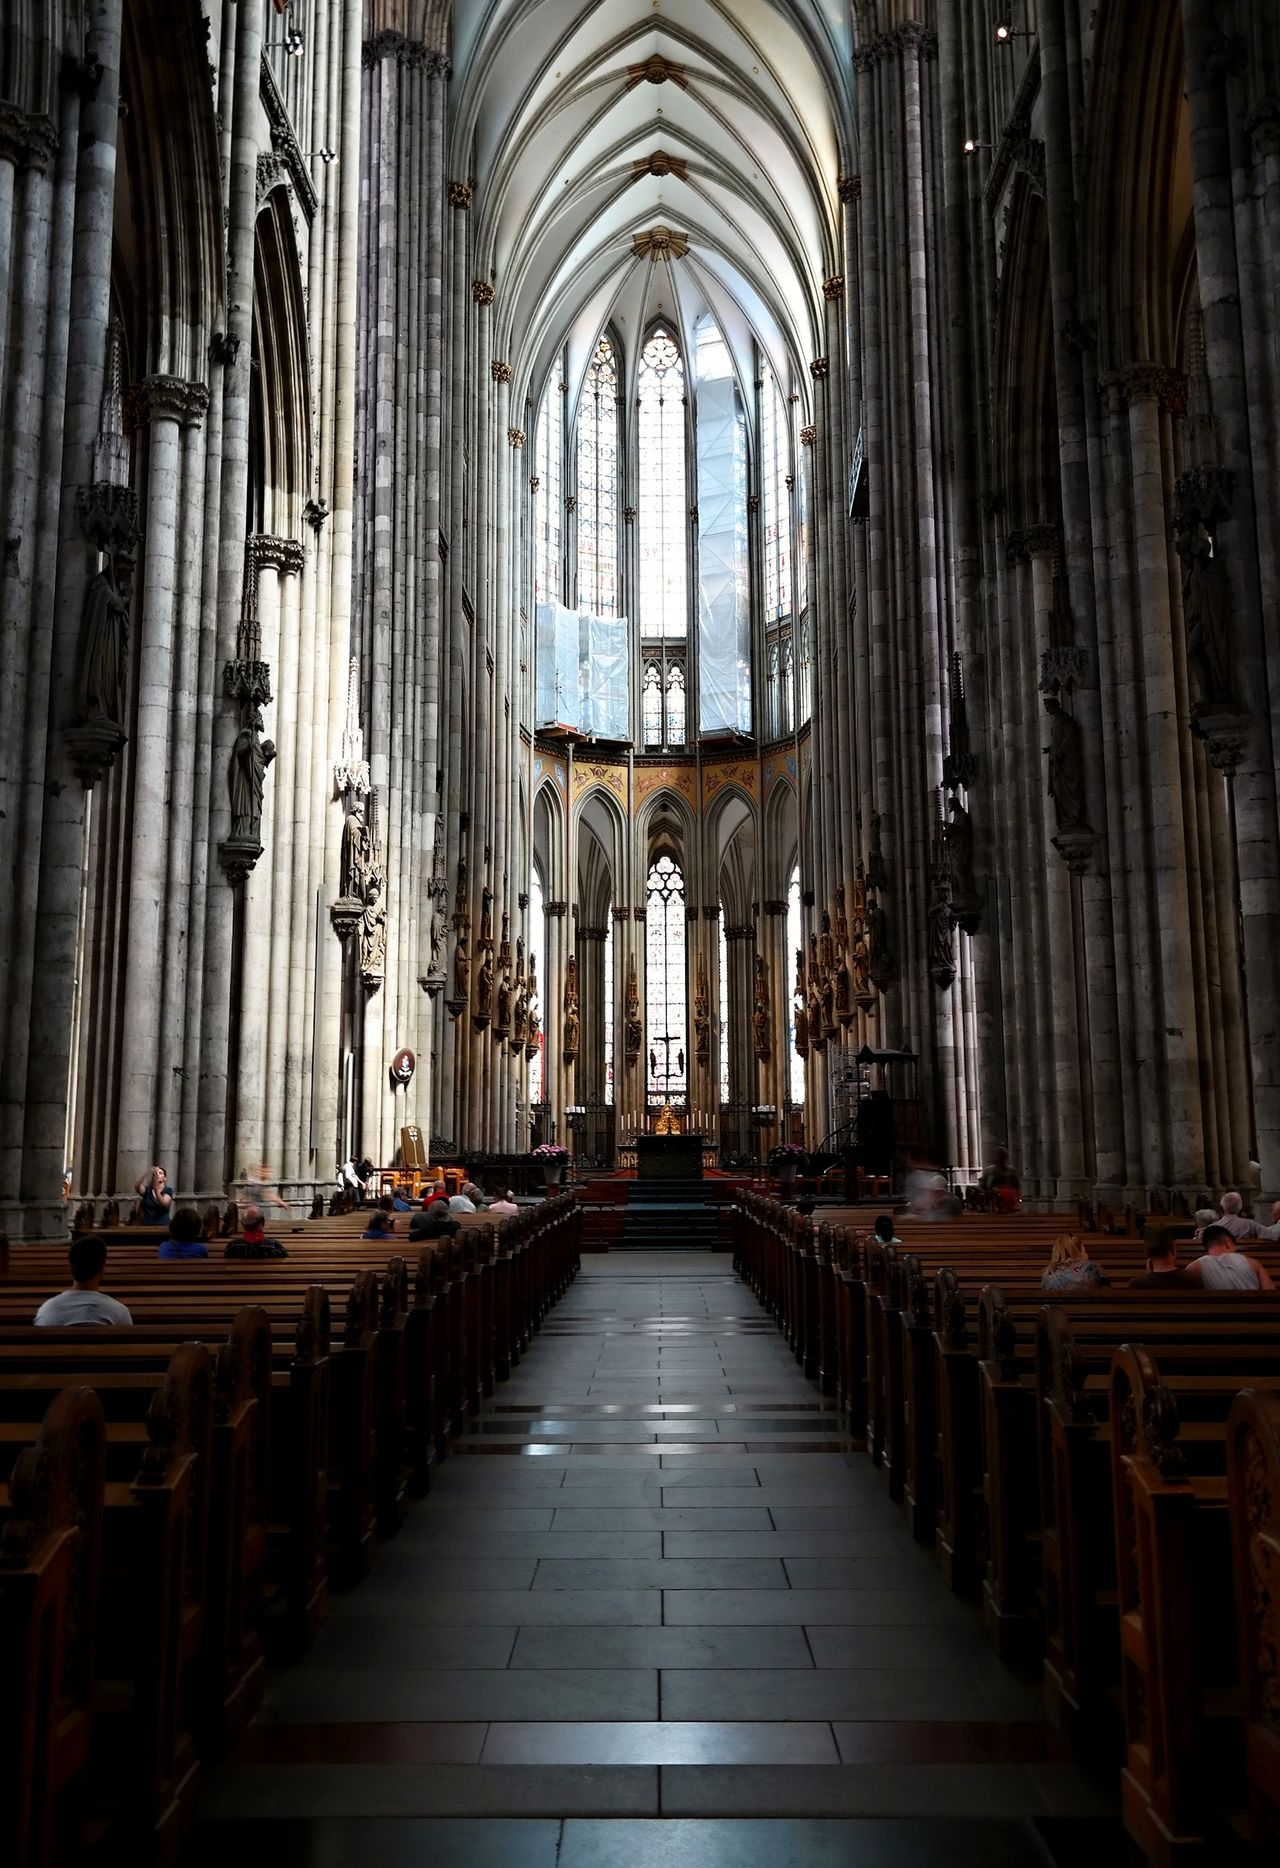 Altar Architectural Column Architecture Cathedral Church Cologne Cologne Cathedral Germany🇩🇪 History Indoors  Köln Kölner Dom Kölner Dom Cathedral North Rhine-westphalia NRW Place Of Worship Place Of Worship Religion Spirituality The Architect - 2017 EyeEm Awards Traveller